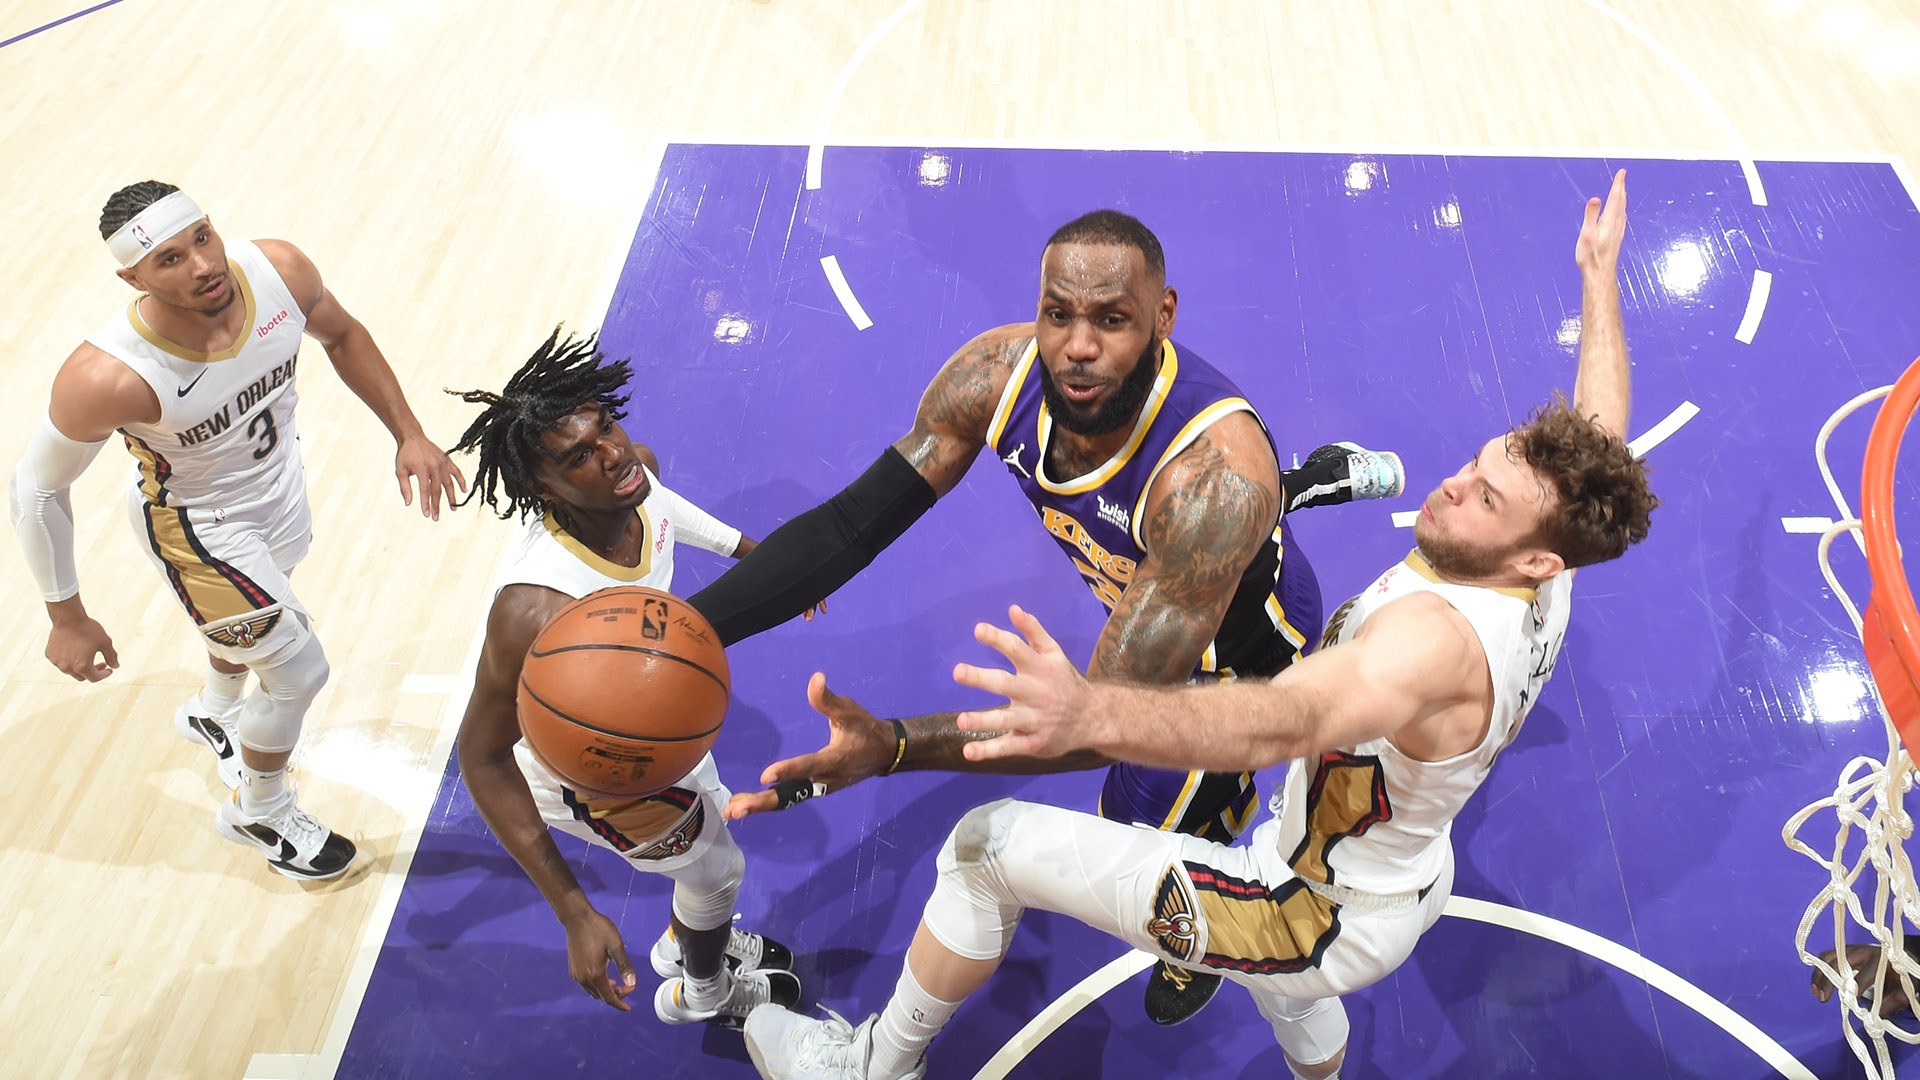 Lakers Use 24-3 Run To Cruise To 5th Consecutive Victory